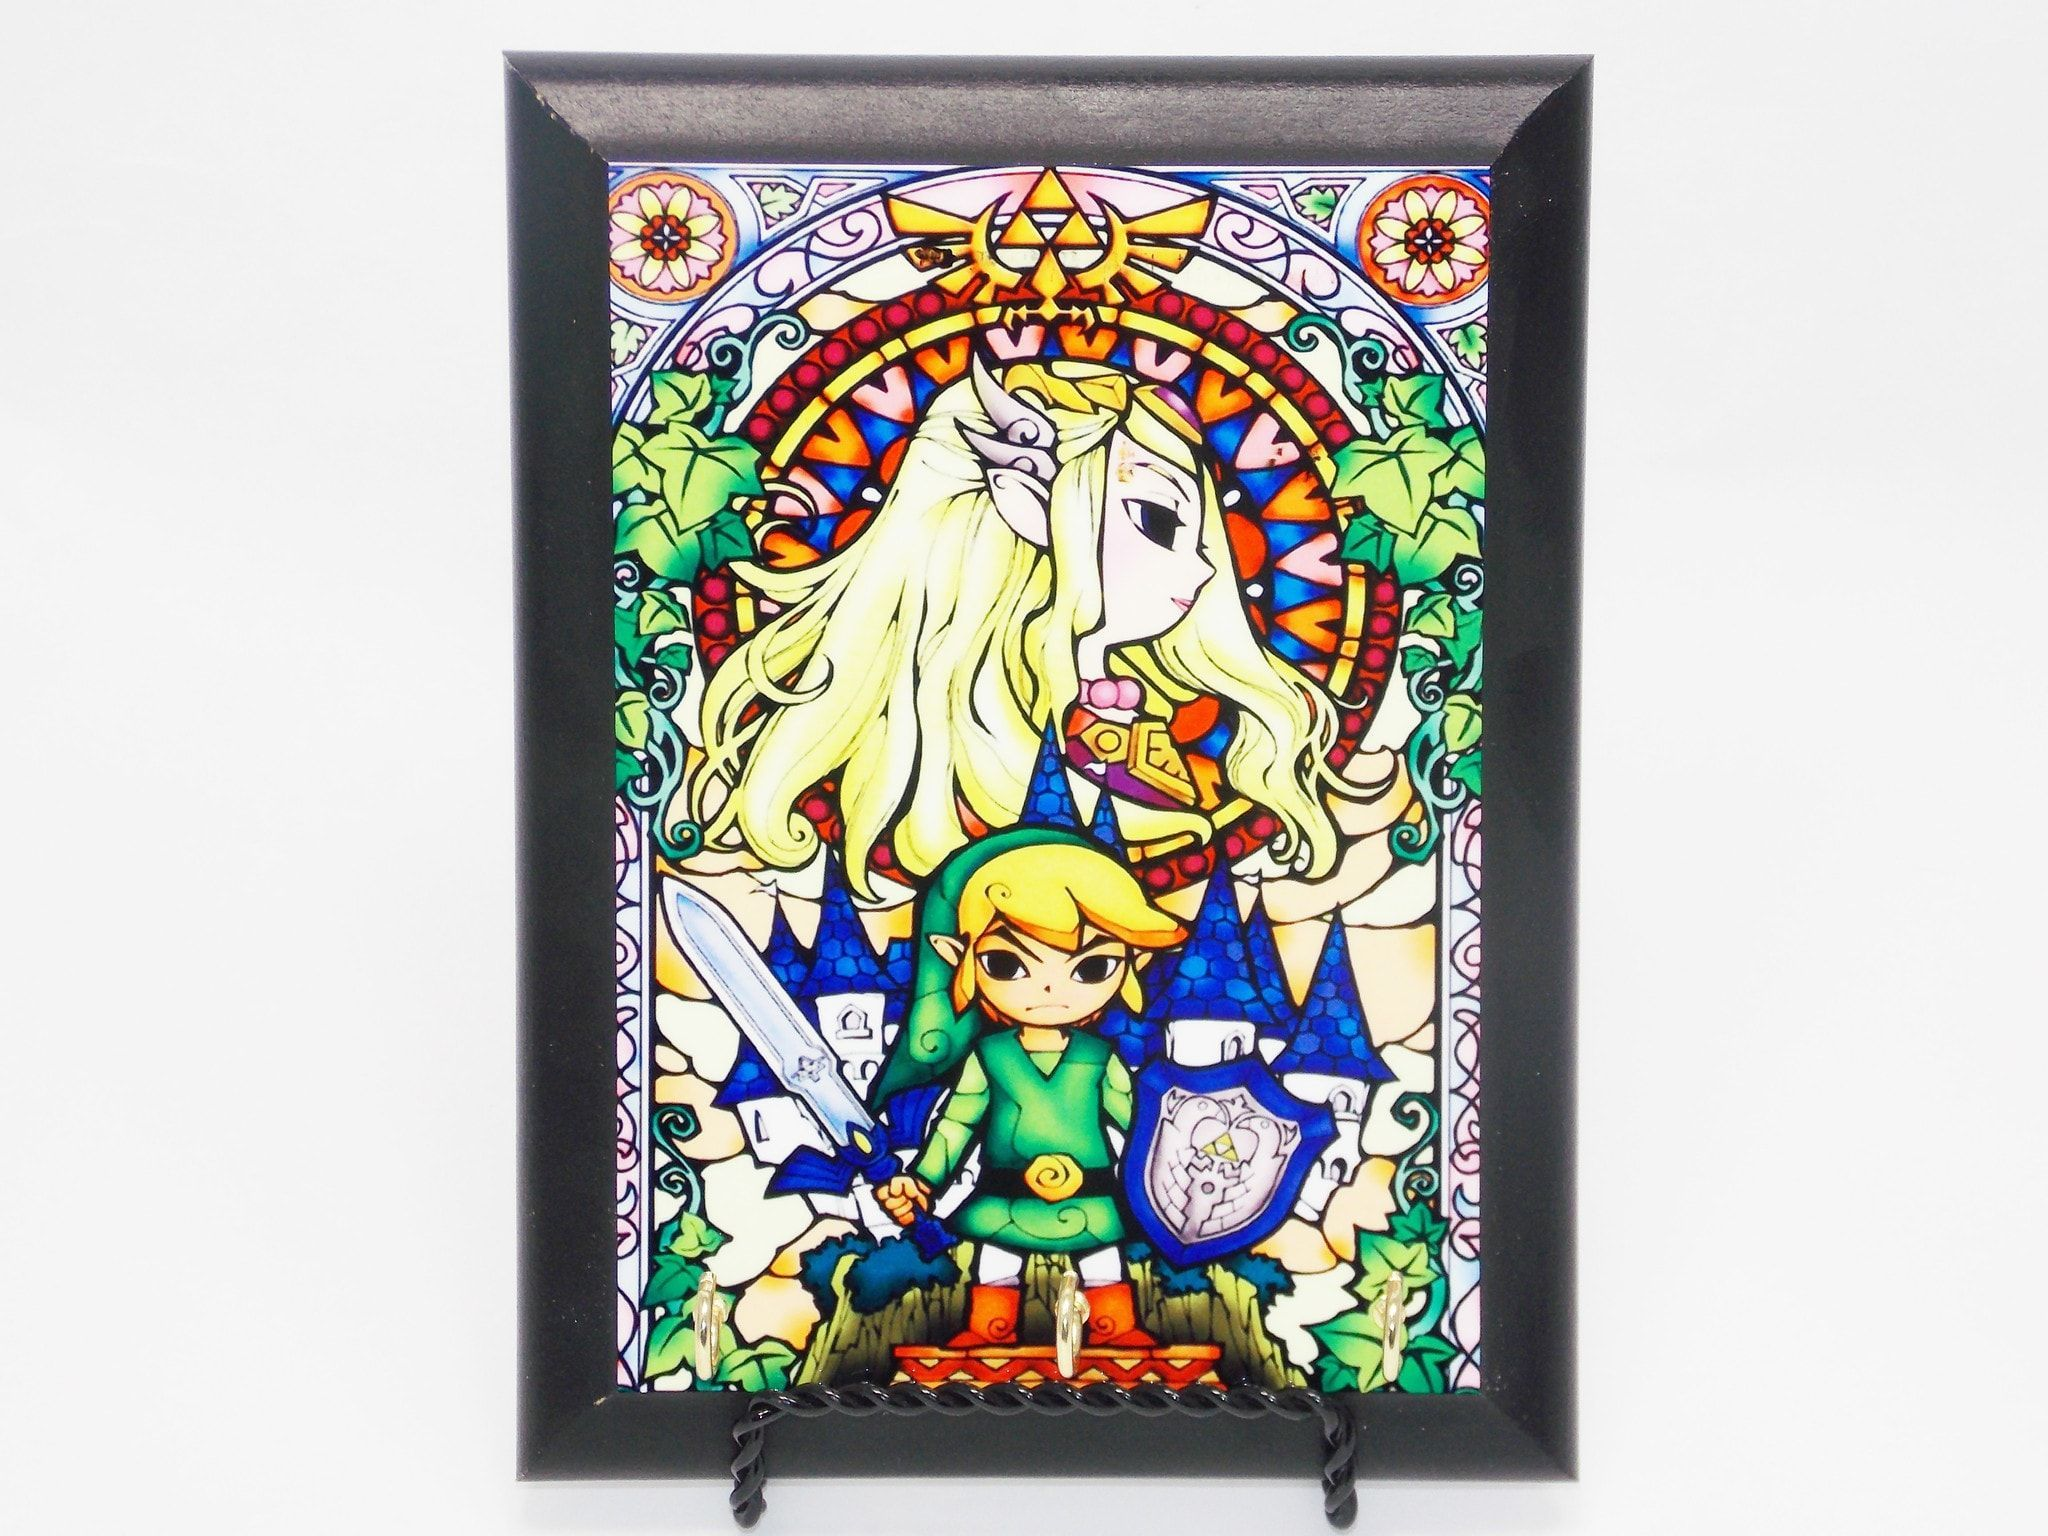 Zelda and link stained glass decorative wall plaque key hanger